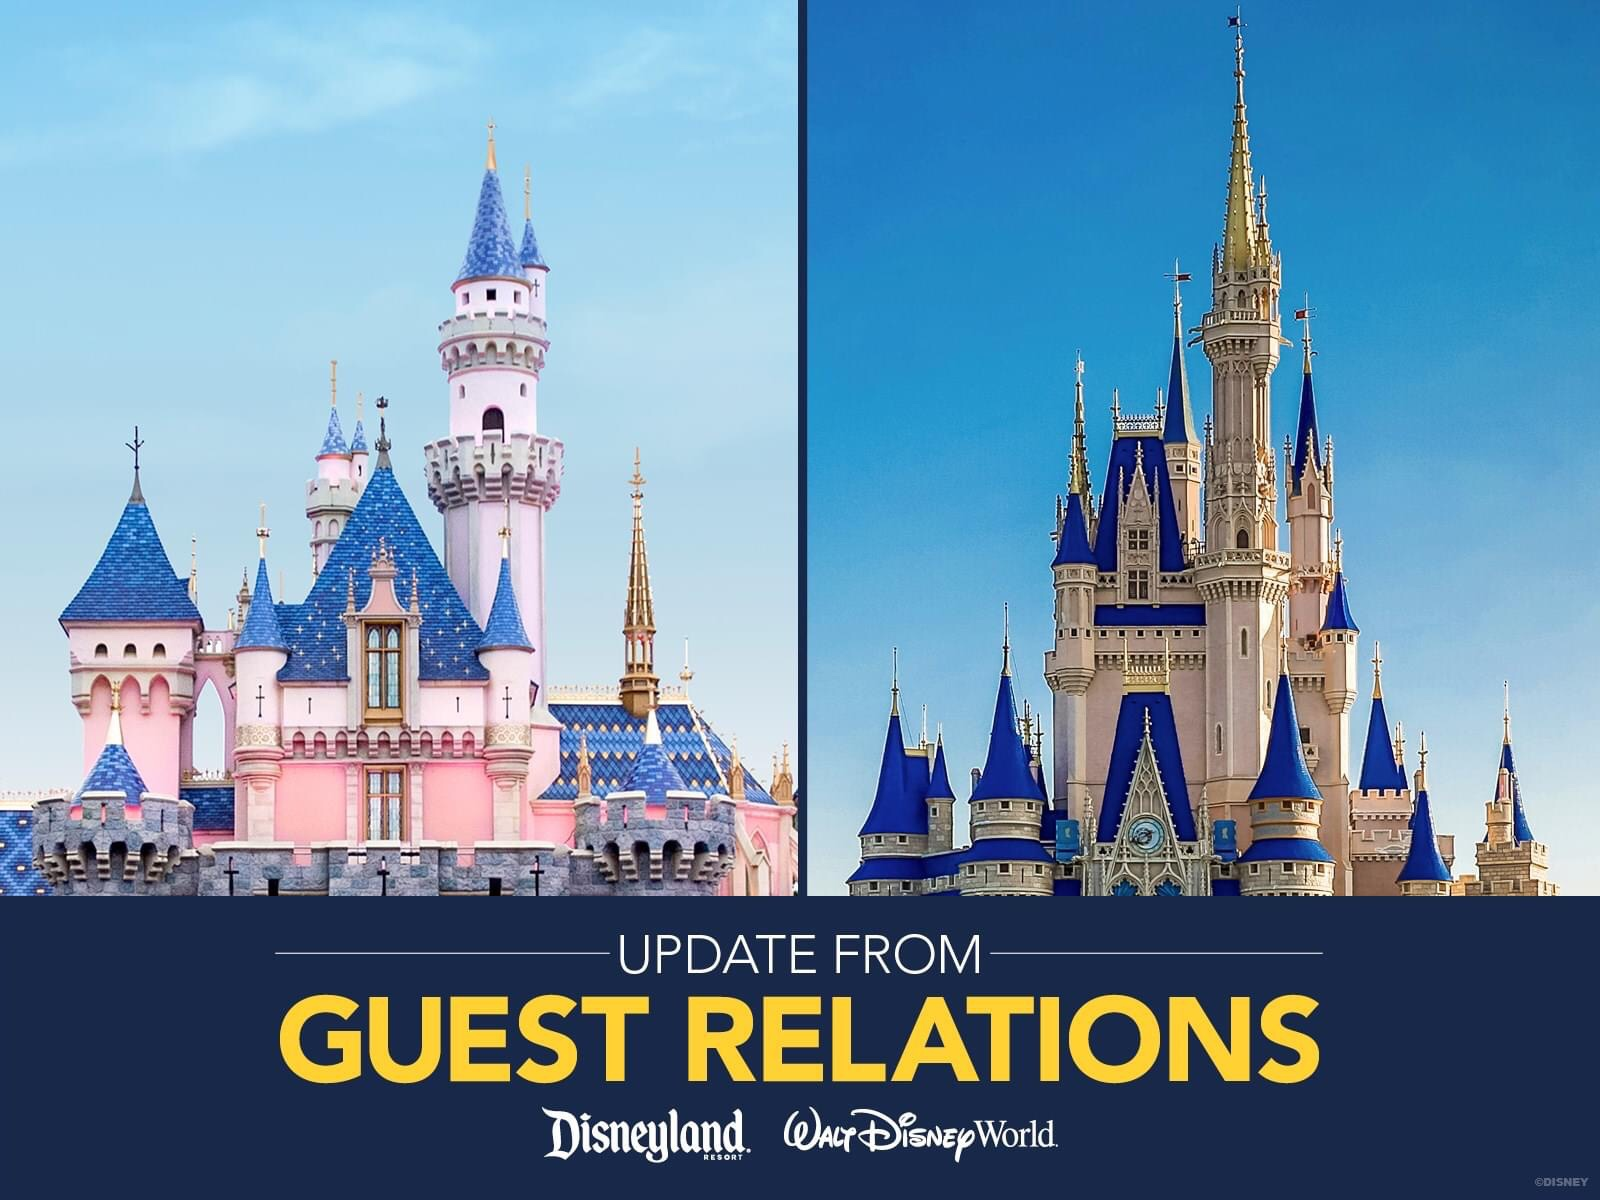 Latest on Disney Parks Reopening